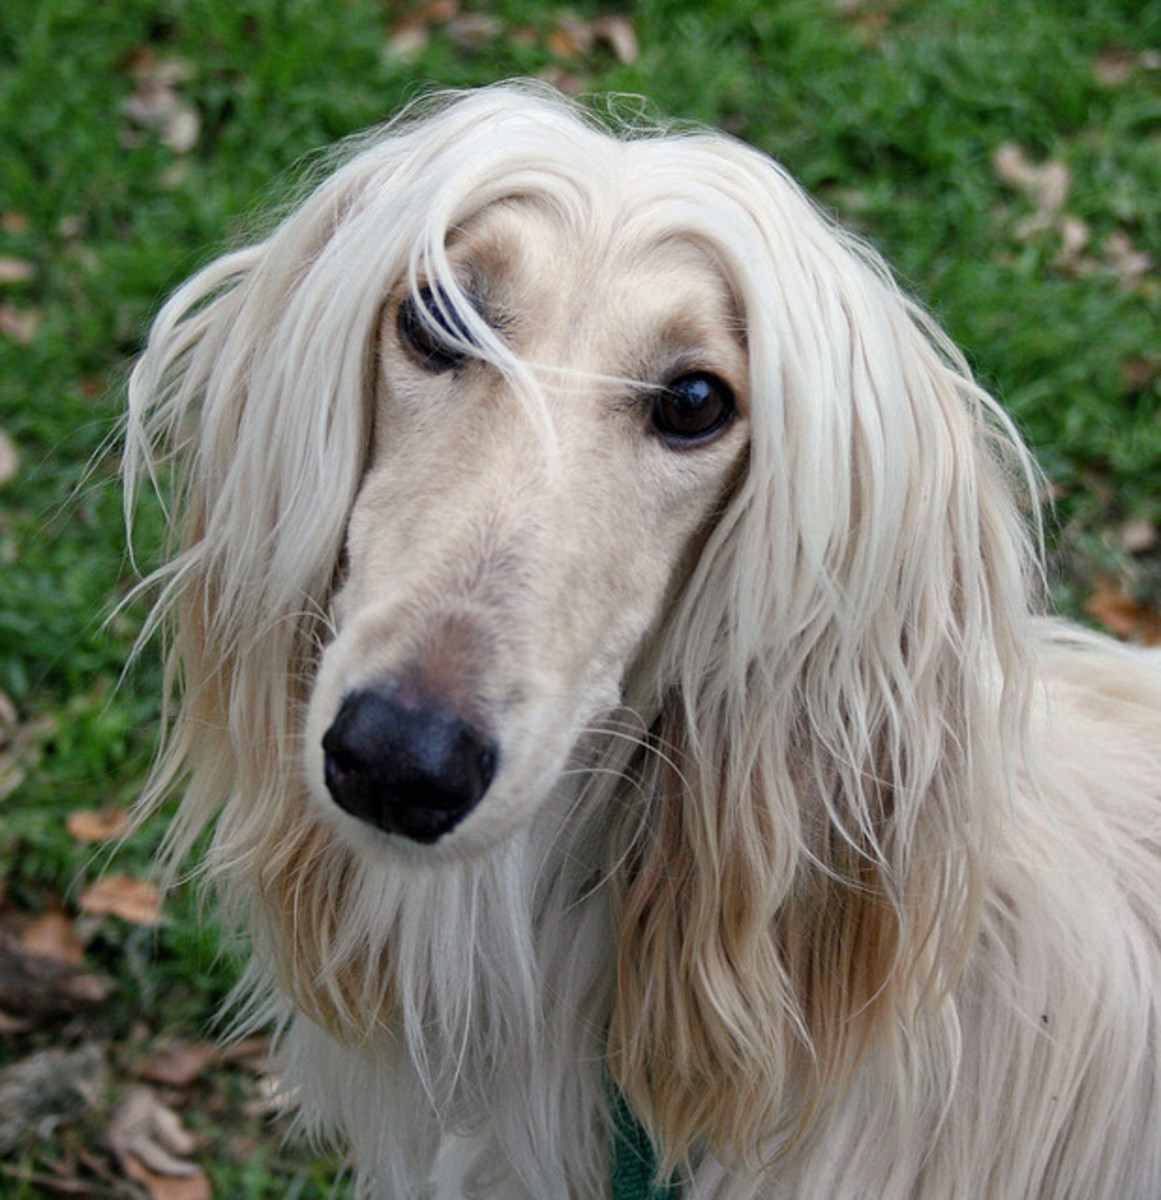 The experts in the canine world have determined that this is the most stupid dog breed. Really?